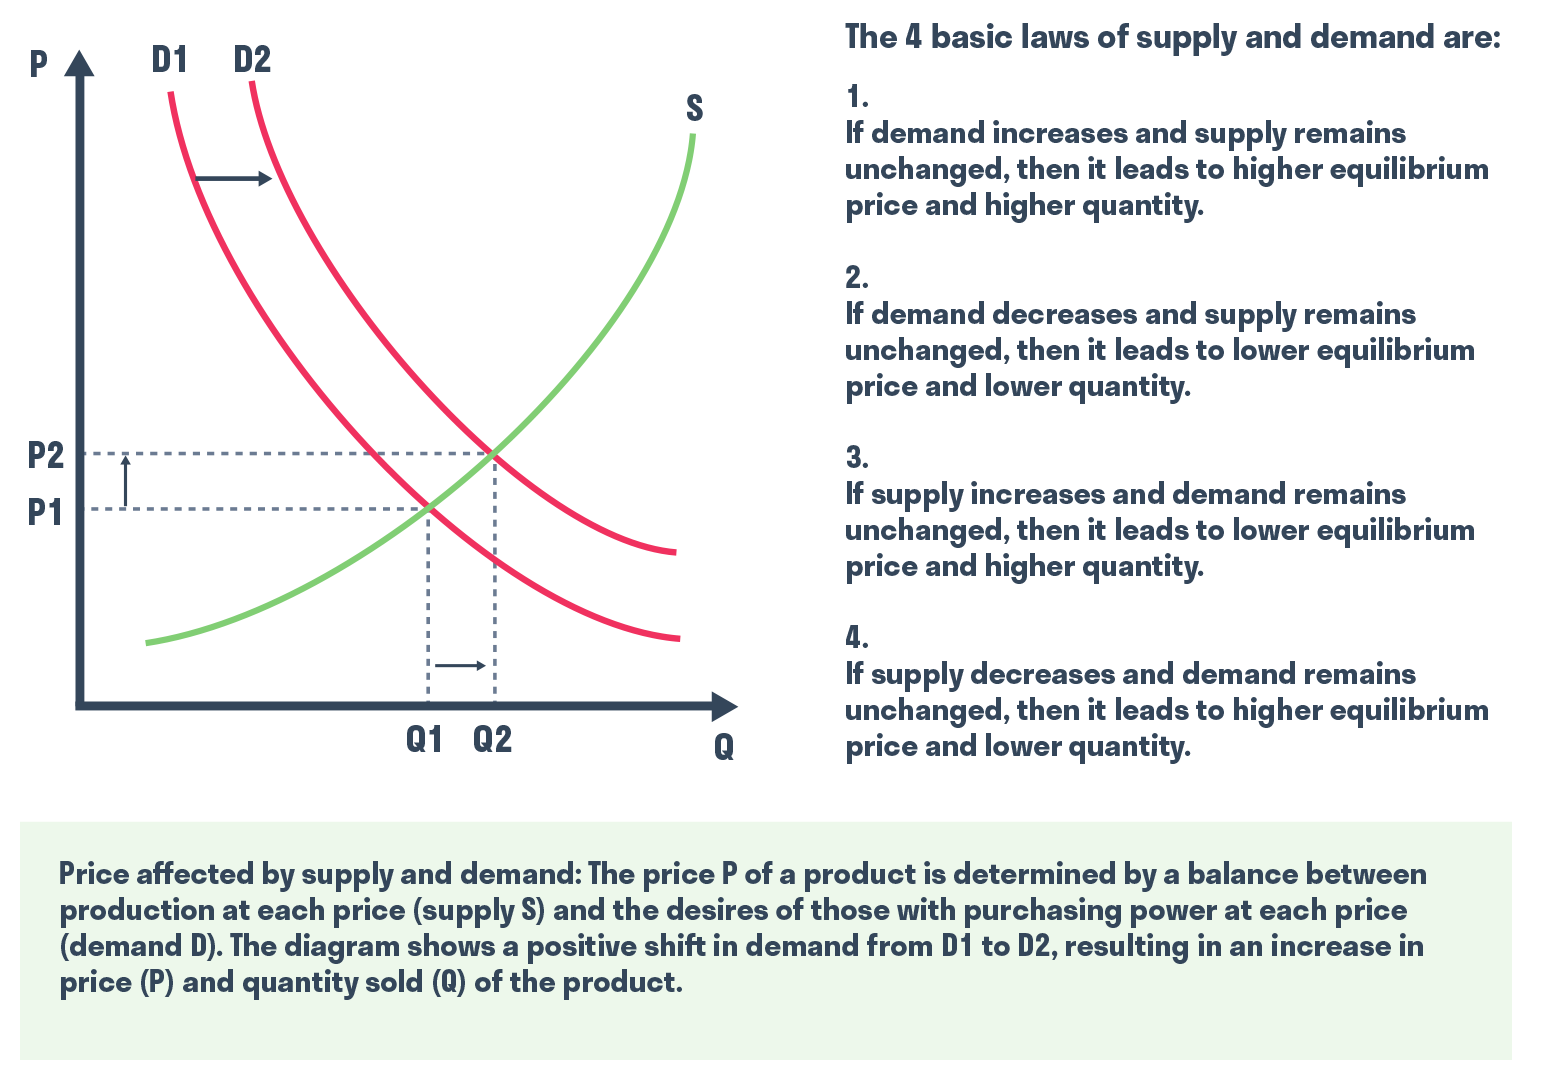 laws_of_supply_demand_graph